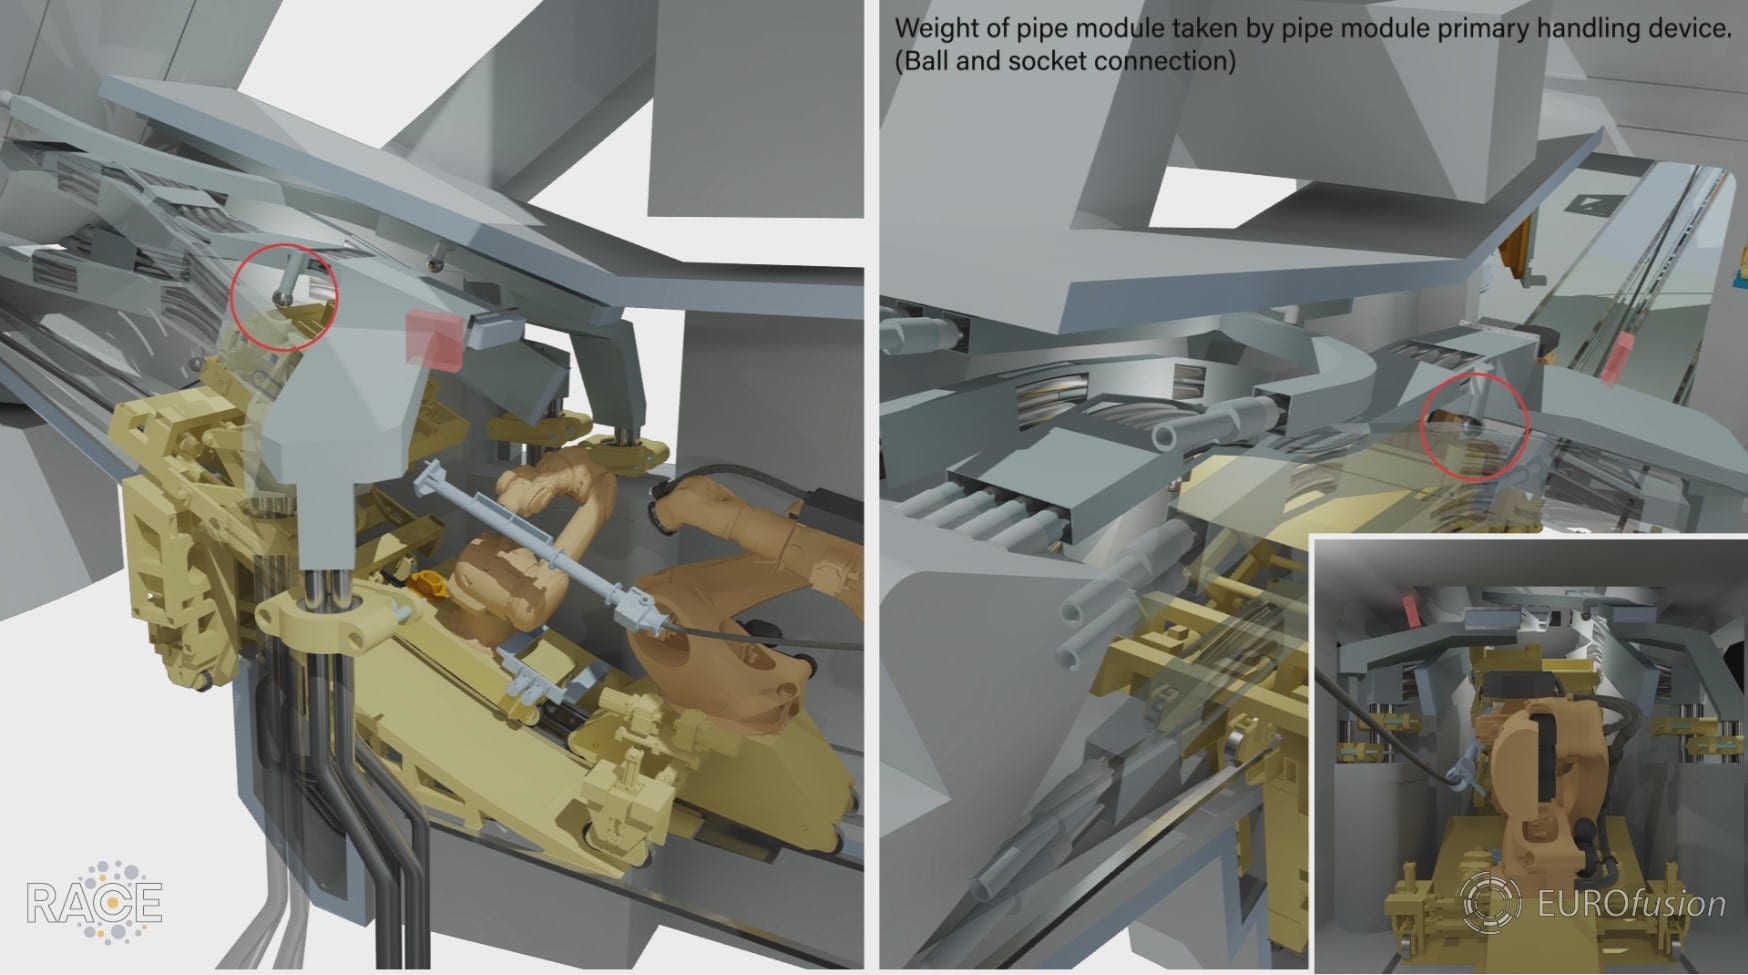 An image from the EU DEMO lower port maintenance animation from 2018